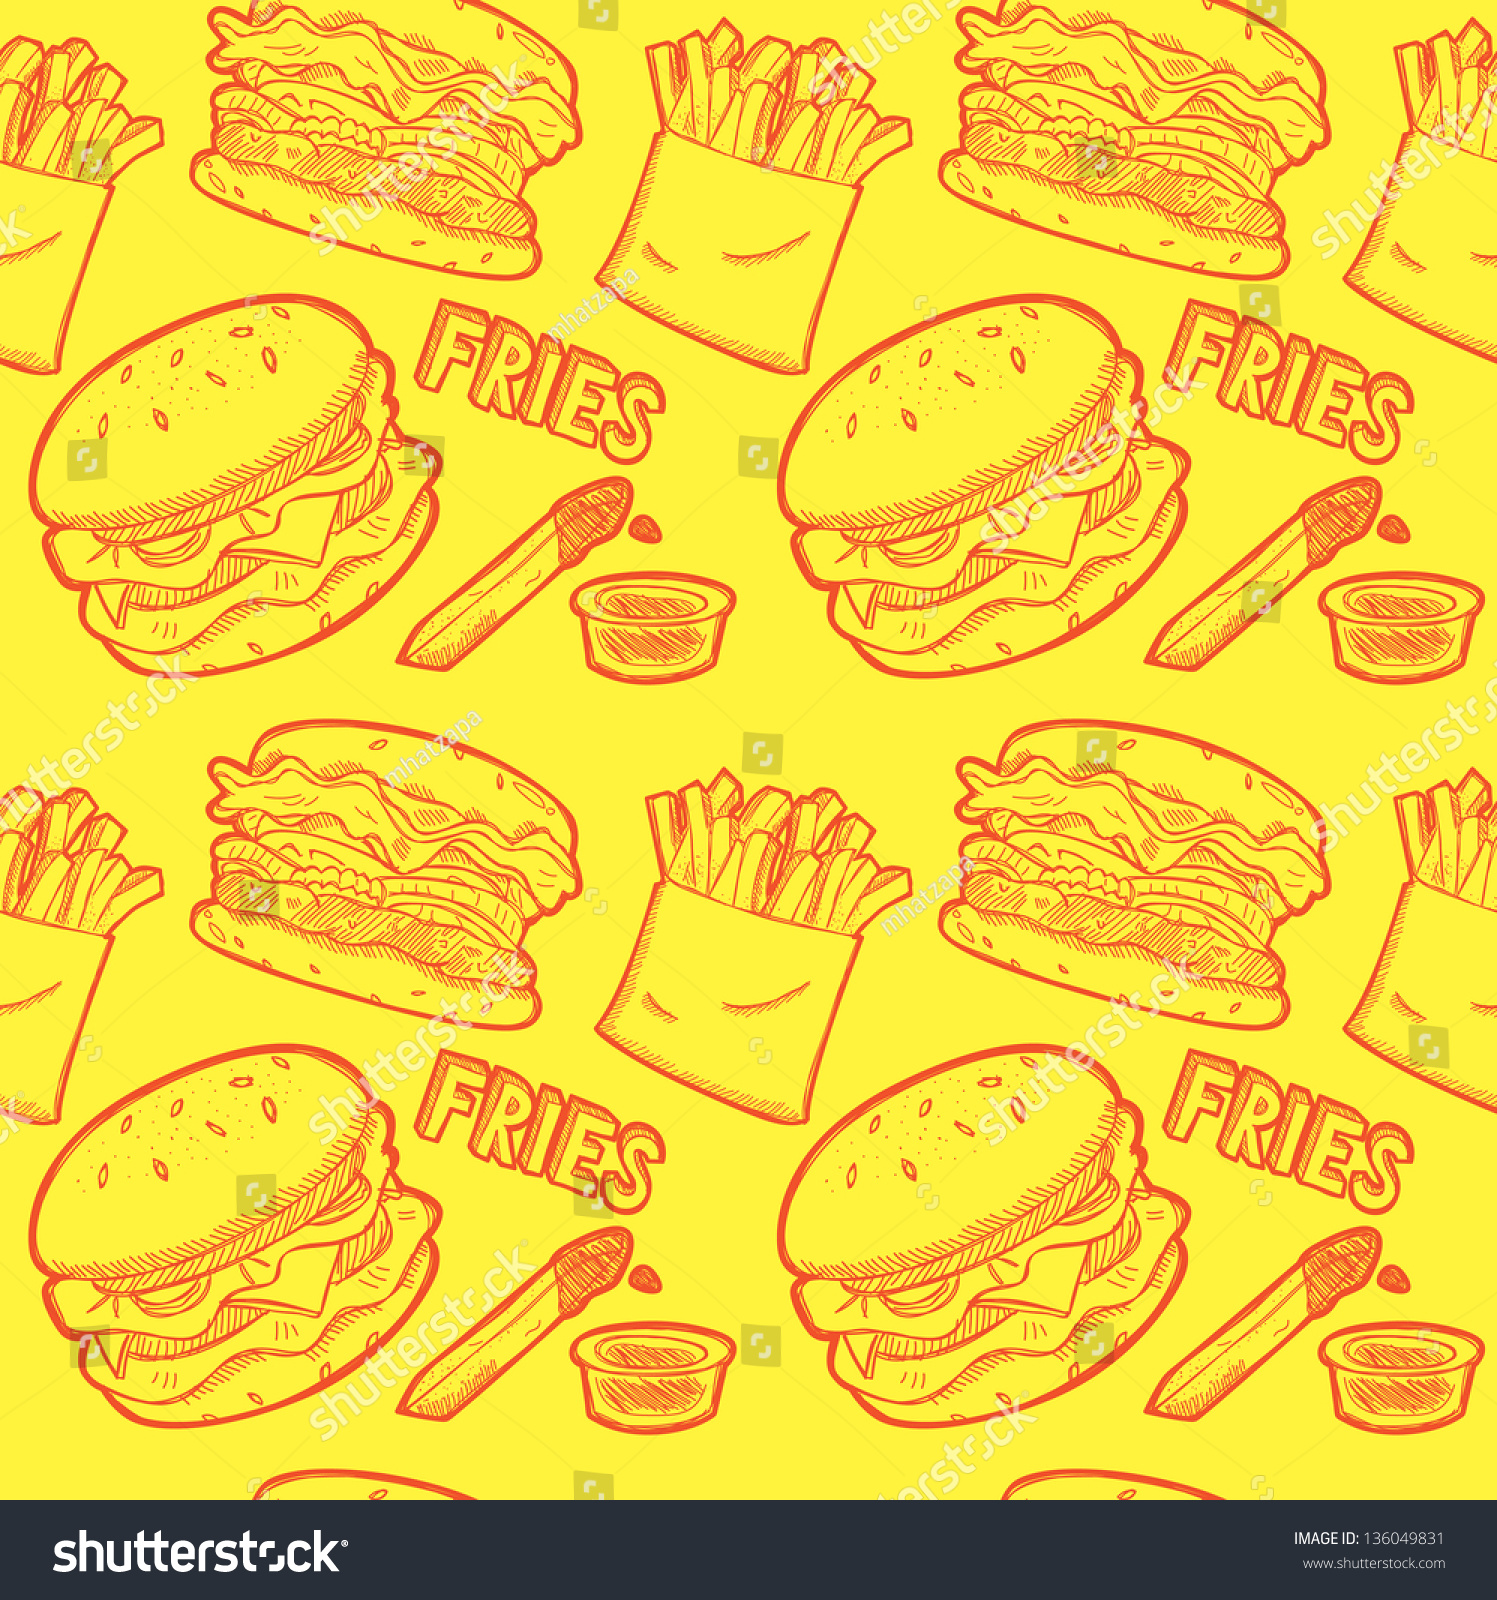 fast food wrapping paper pattern stock vector shutterstock fast food wrapping paper pattern